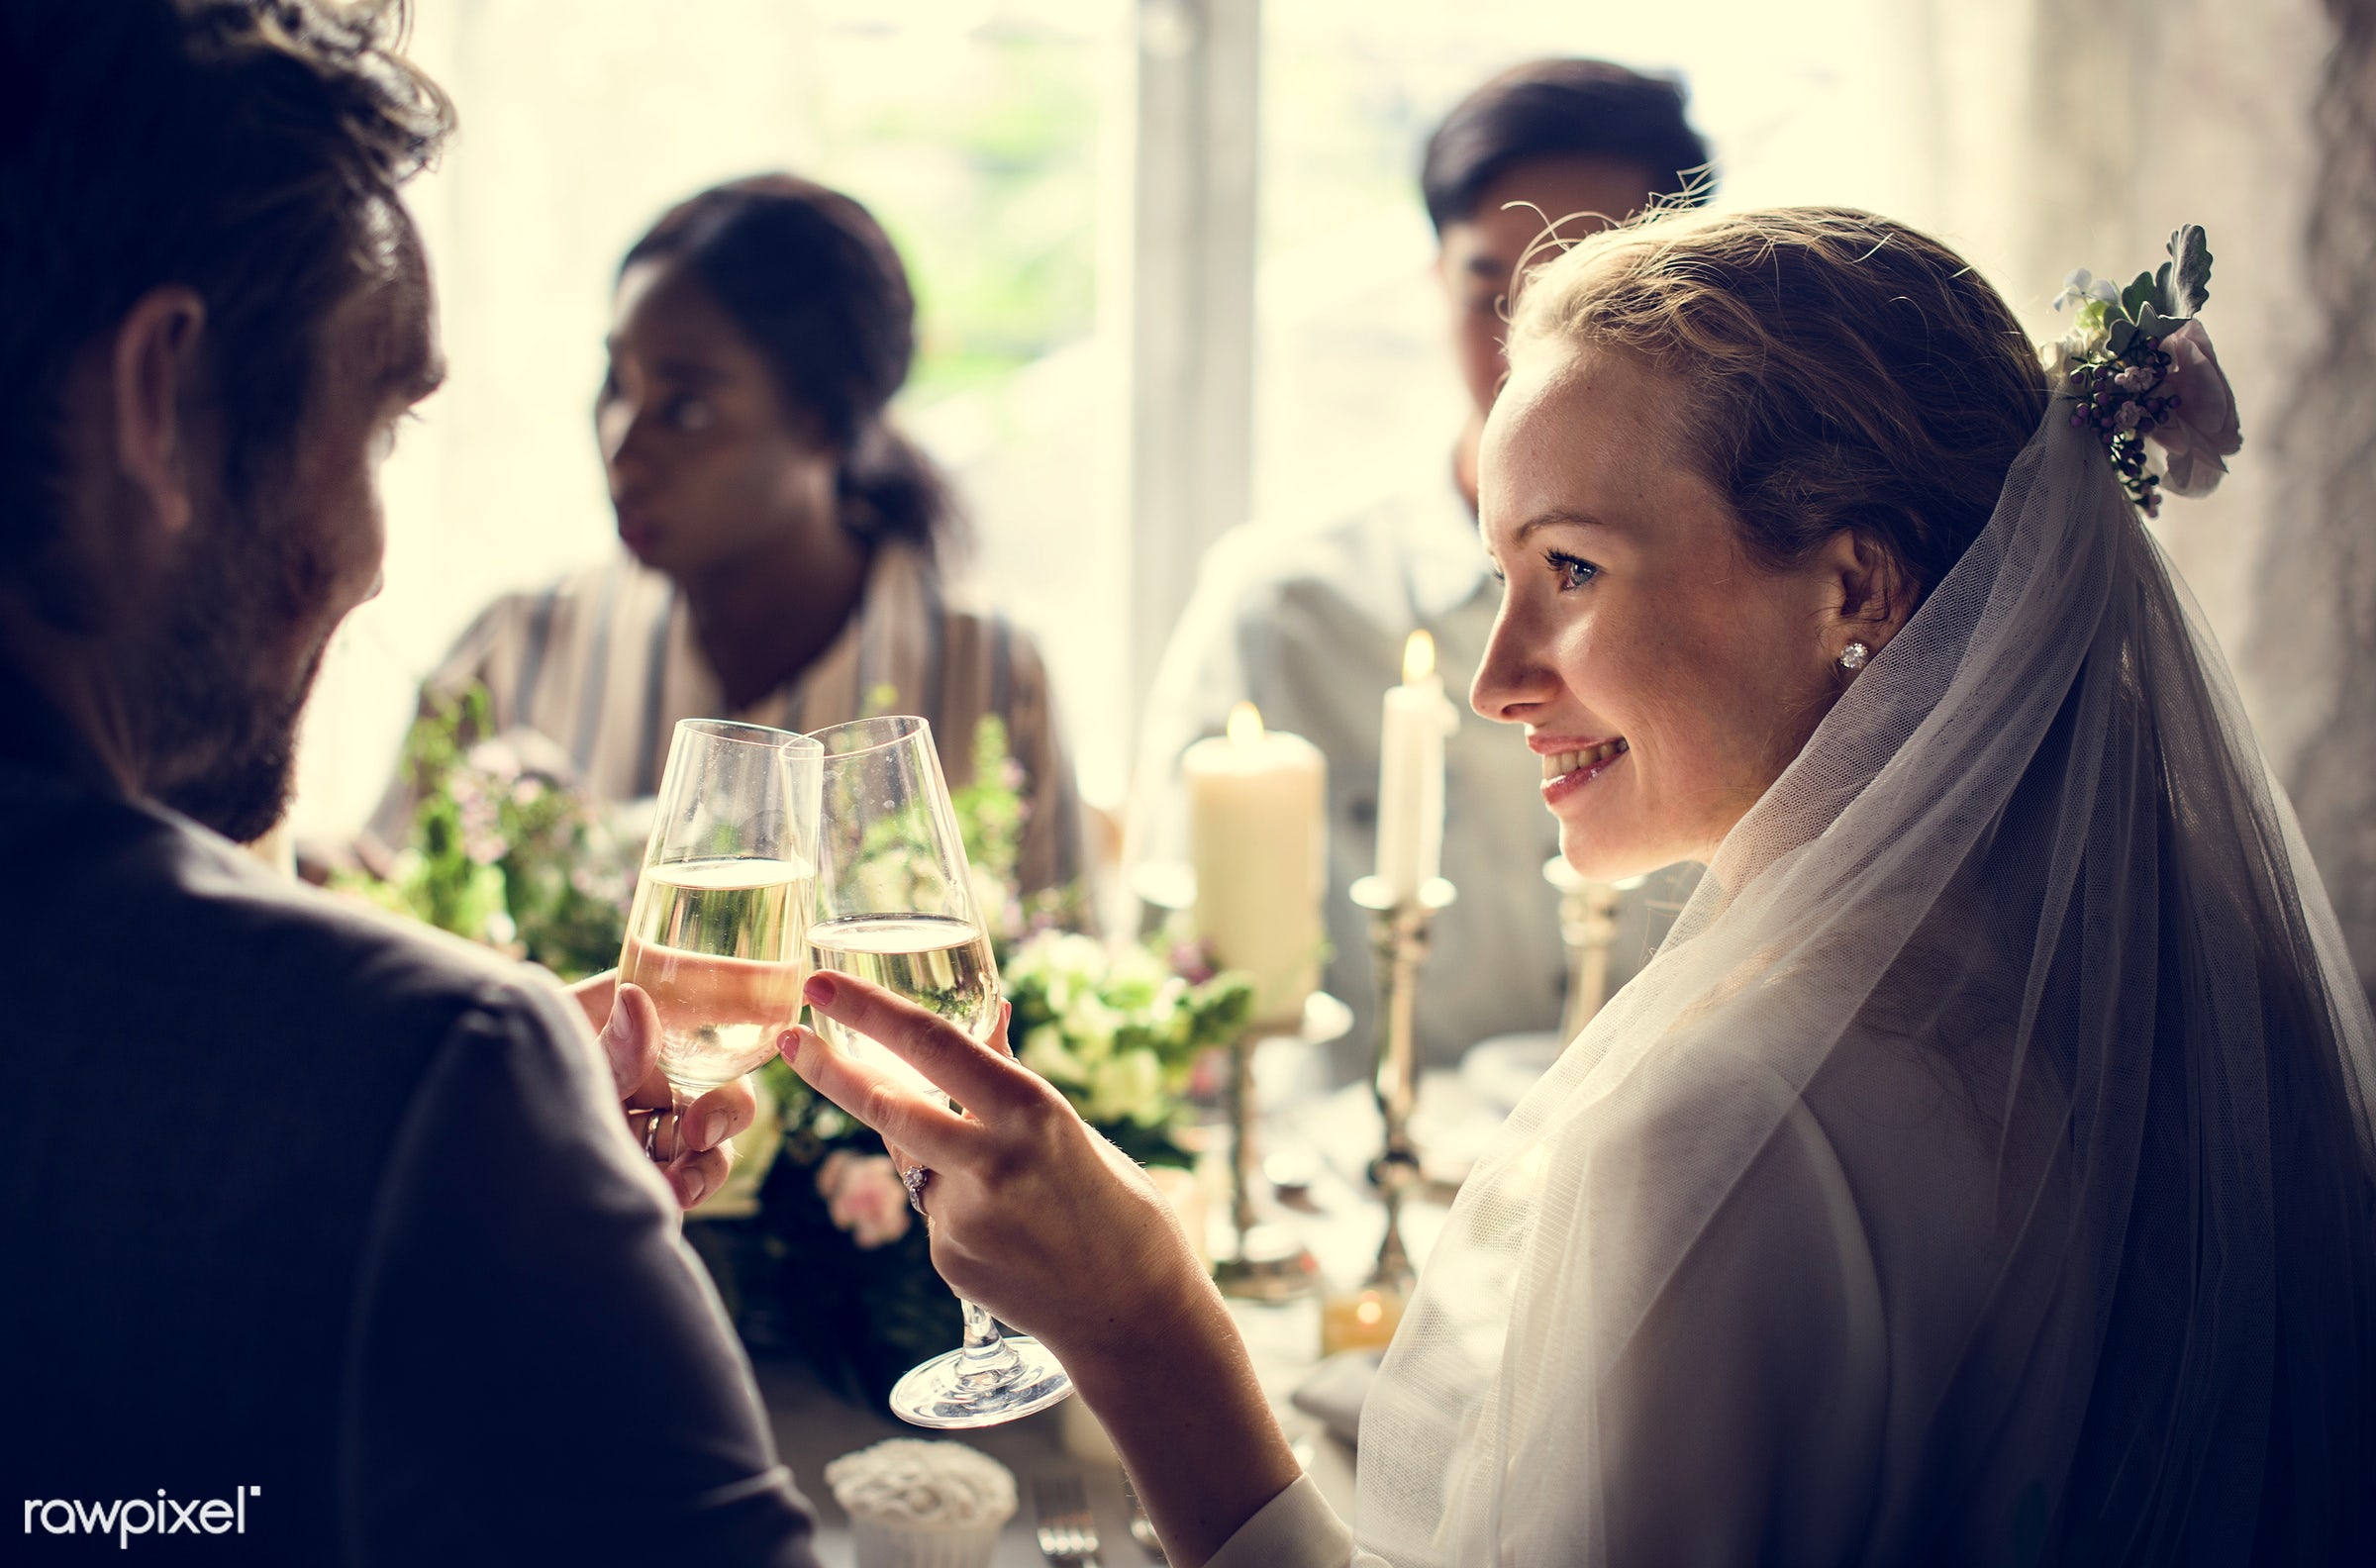 expression, person, smitten, people, together, love, friends, married, family, event, woman, gathering, cheerful, happiness...